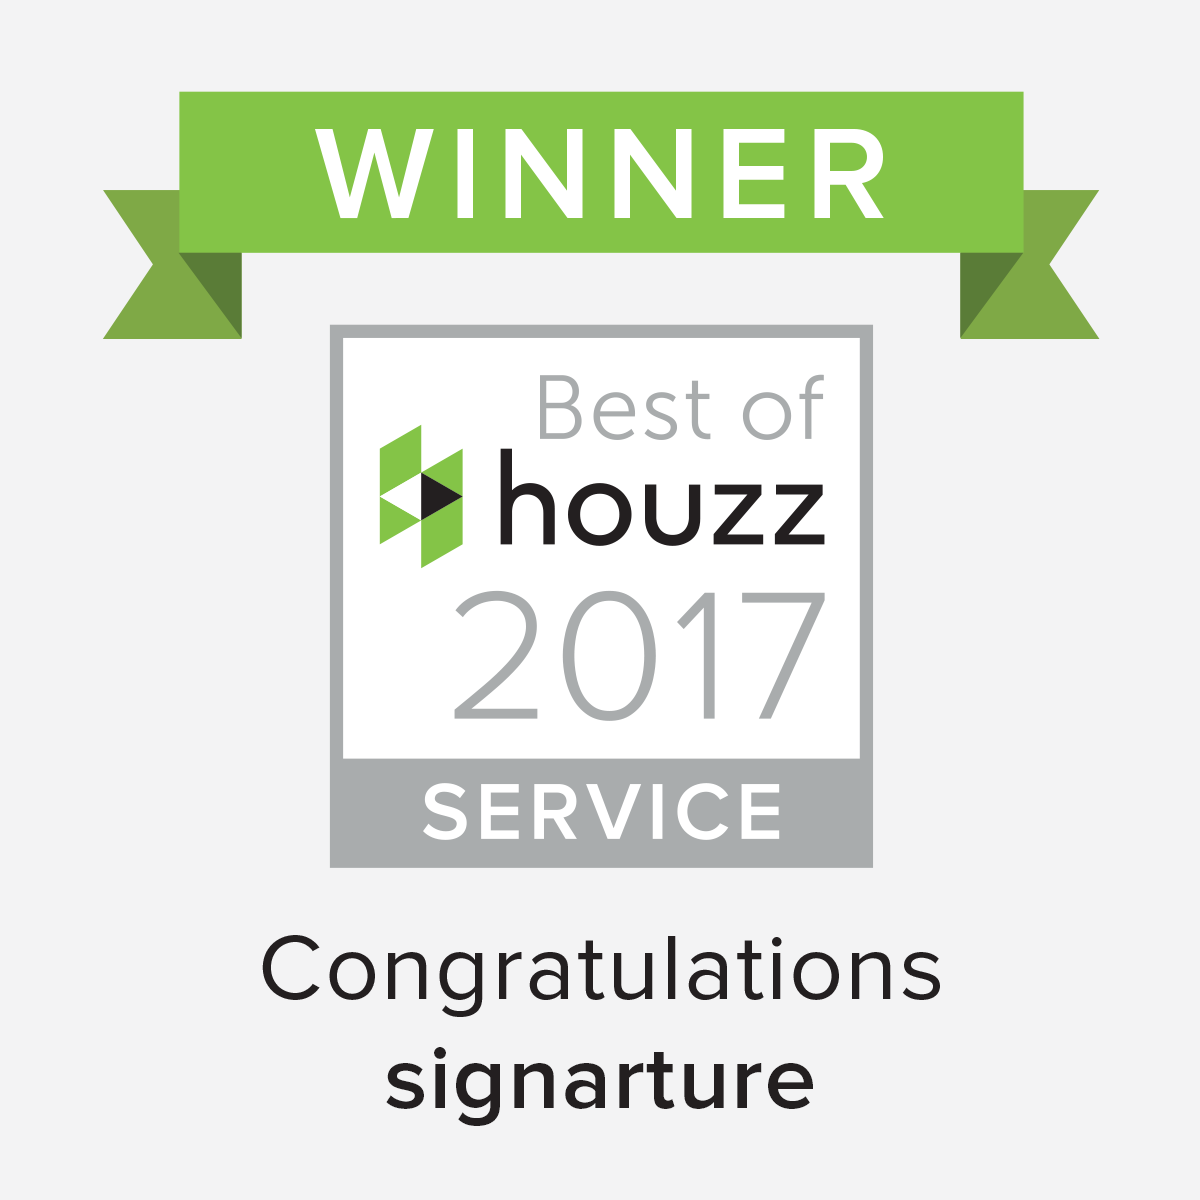 signarture wins best of houzz 2017